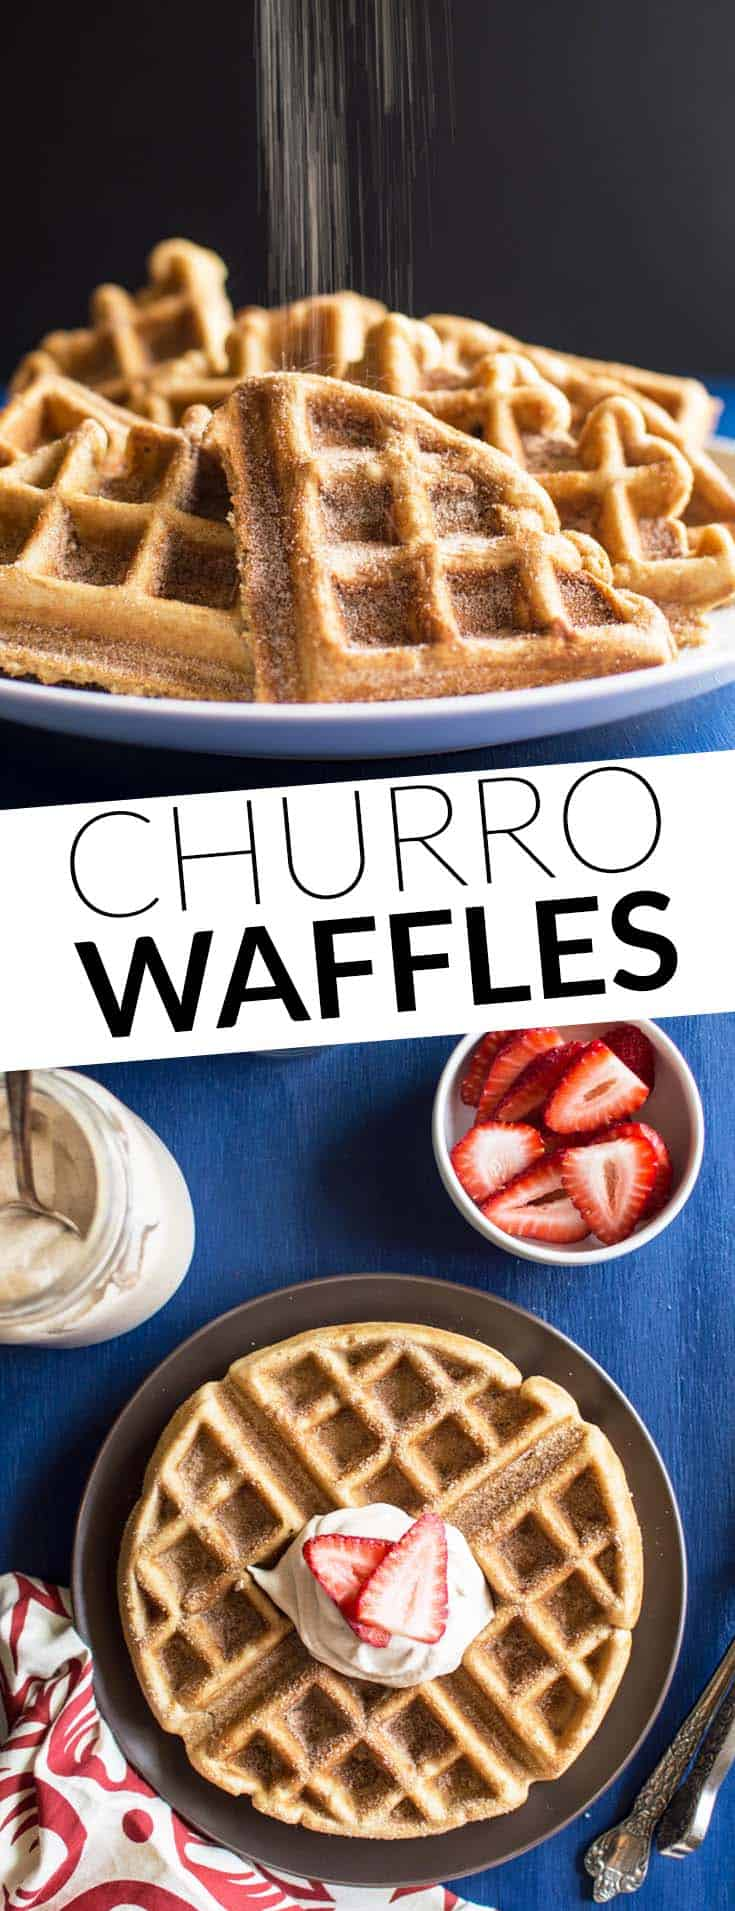 Churro Waffles with Cayenne Whipped Cream - perfect for lunch! @healthynibs